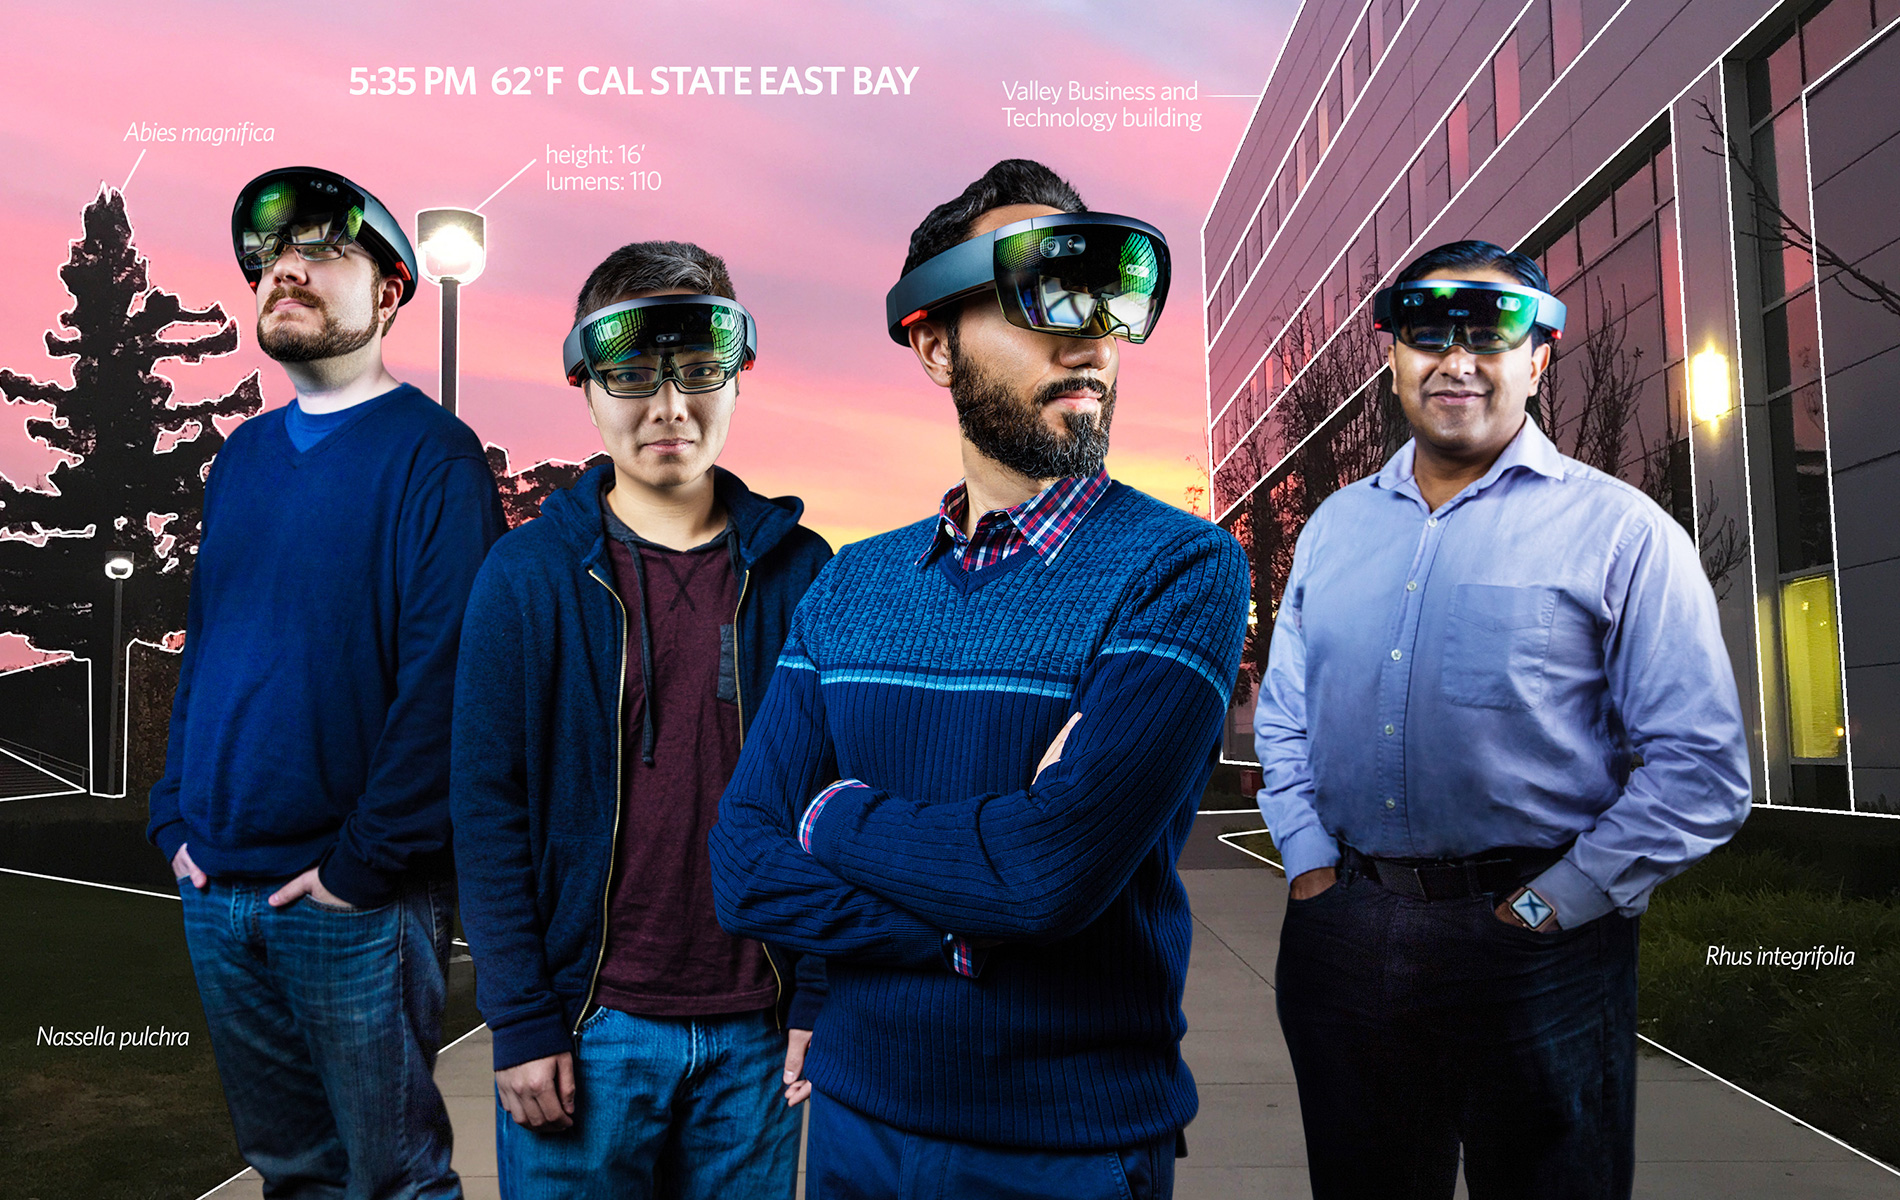 Four men wearing VR googles near the VBT building